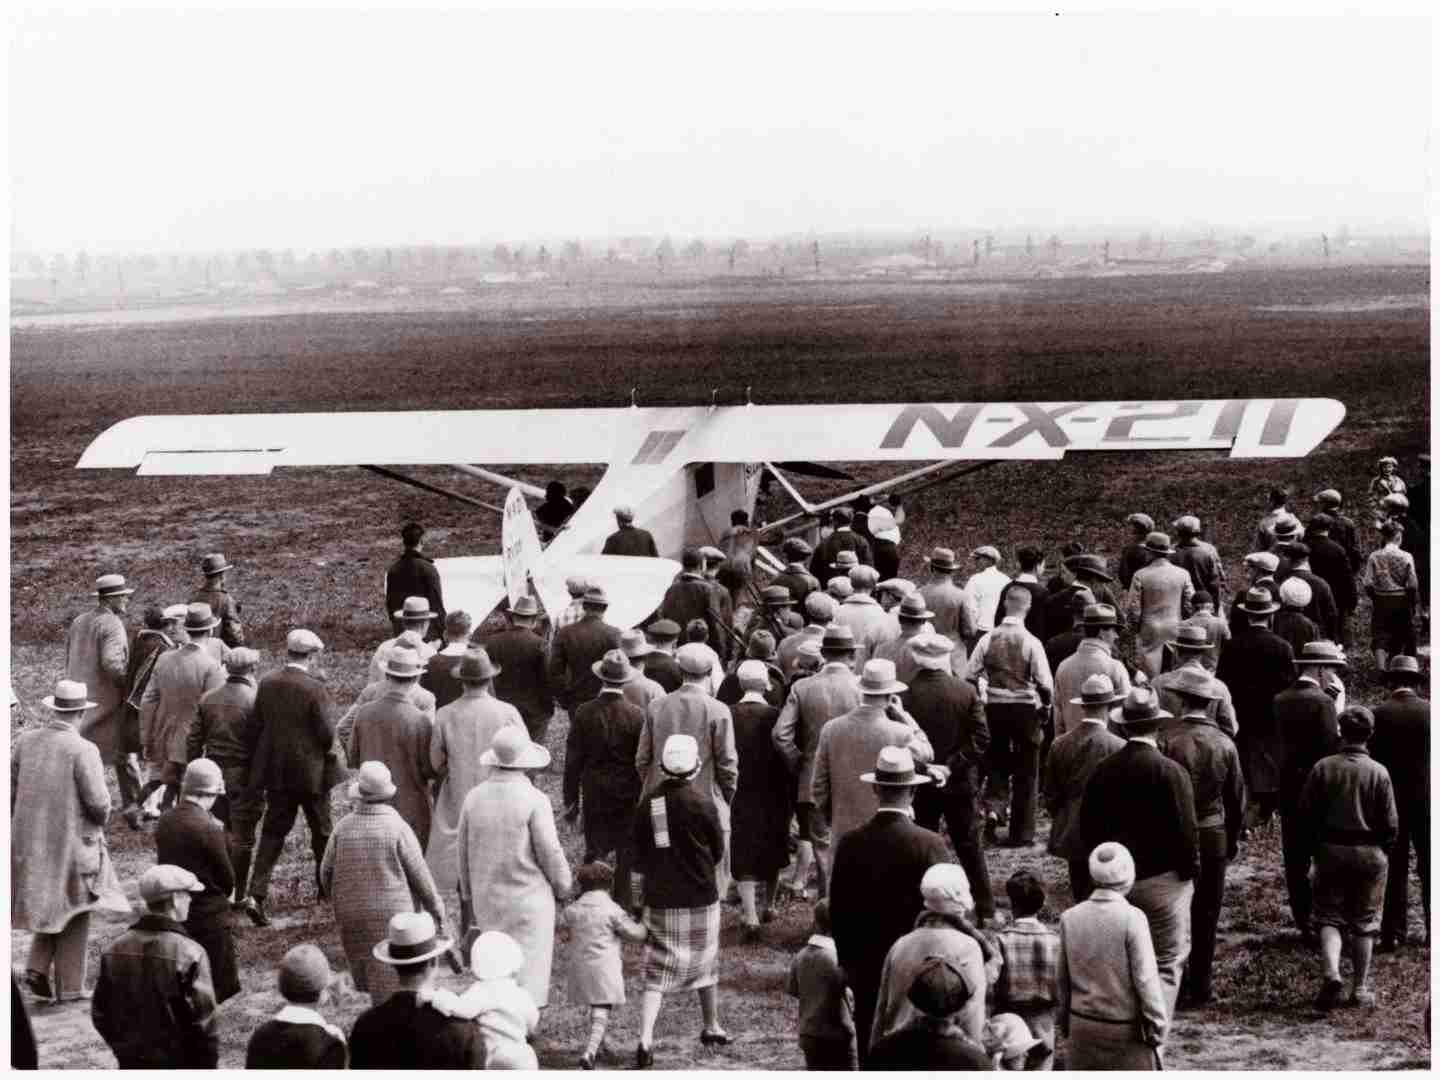 Charles Lindbergh departing Roosevelt Field, where 1,000 people gathered to watch. Image via Smithsonian.